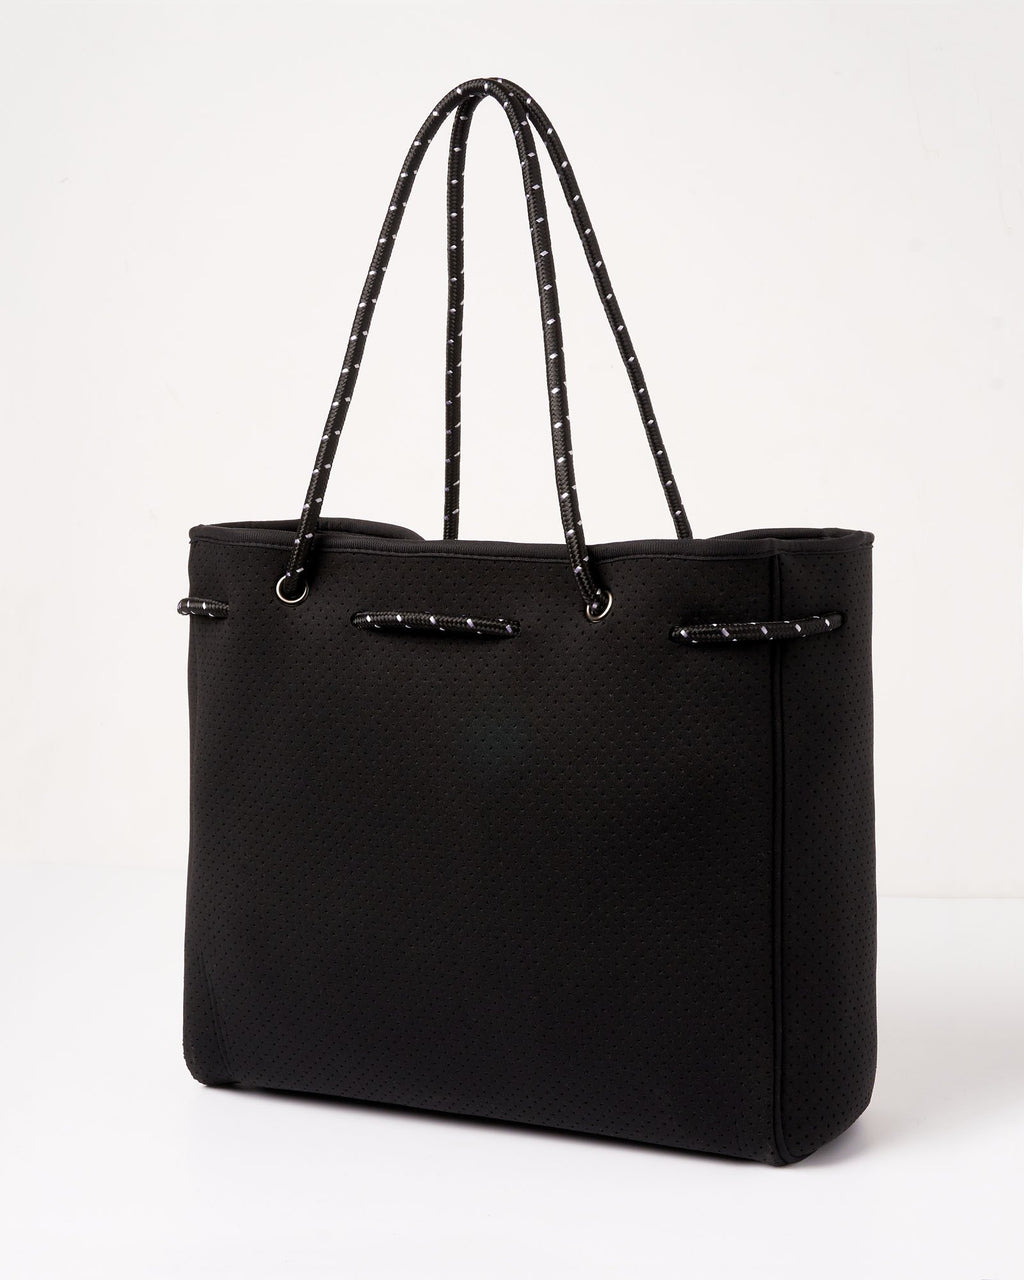 Miz Casa & Co Allegra Neoprene Tote Bag Black-Miz Casa & Co-Nomads Cove